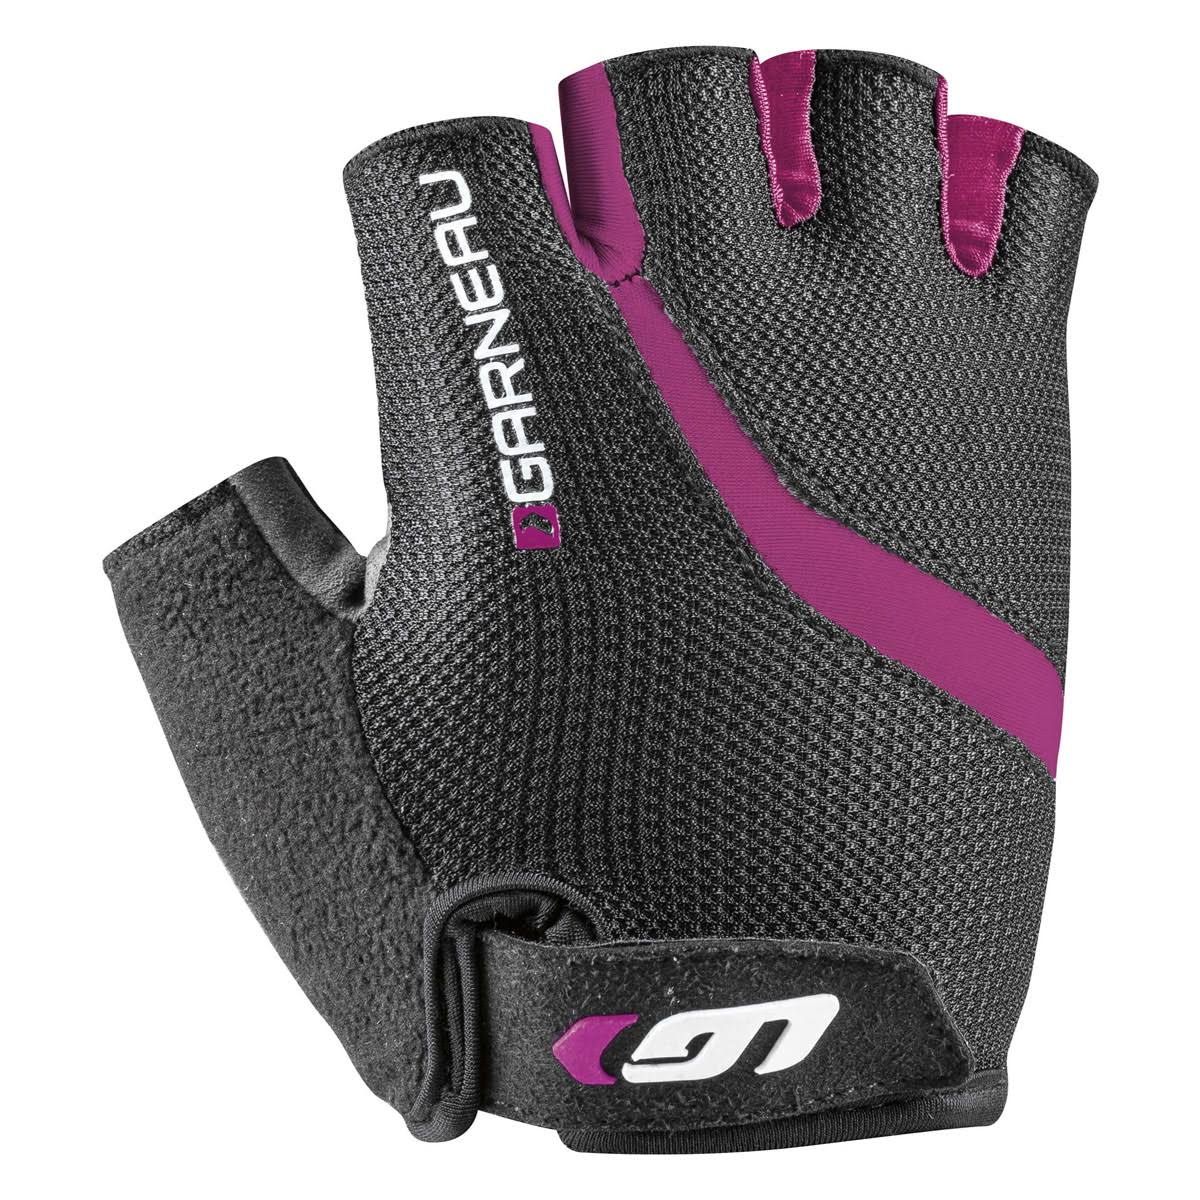 Louis Garneau Women's Biogel RX-V Cycling Gloves - Fuchsia, Large